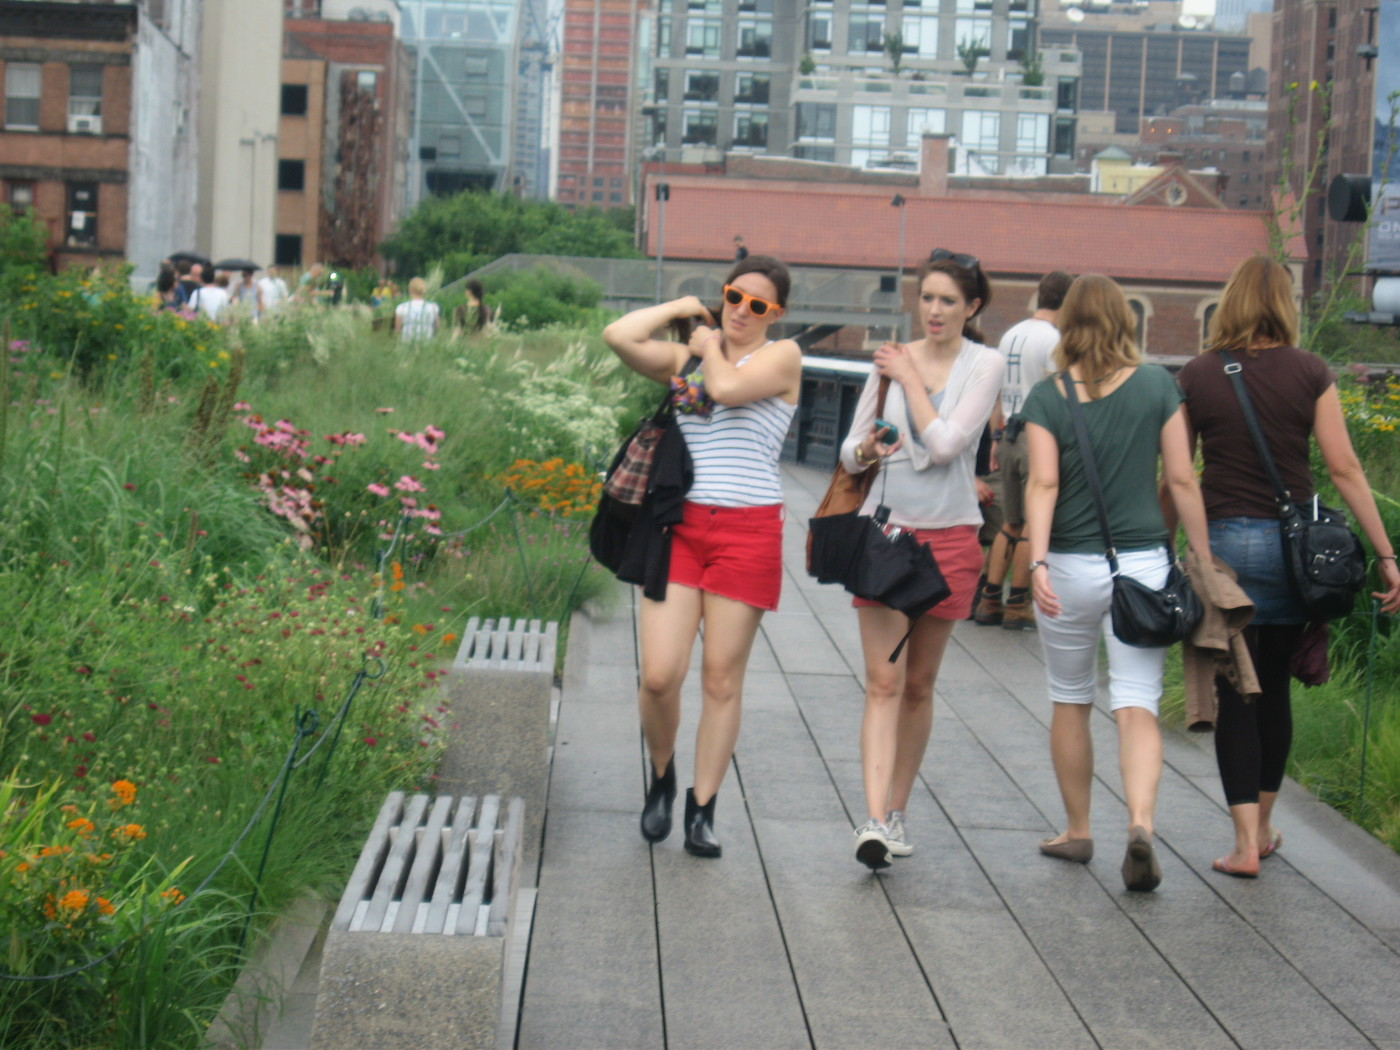 The High Line in New York City by Field Operations and Diller Scofidio + Renfro, image: Allyson Mendenhall